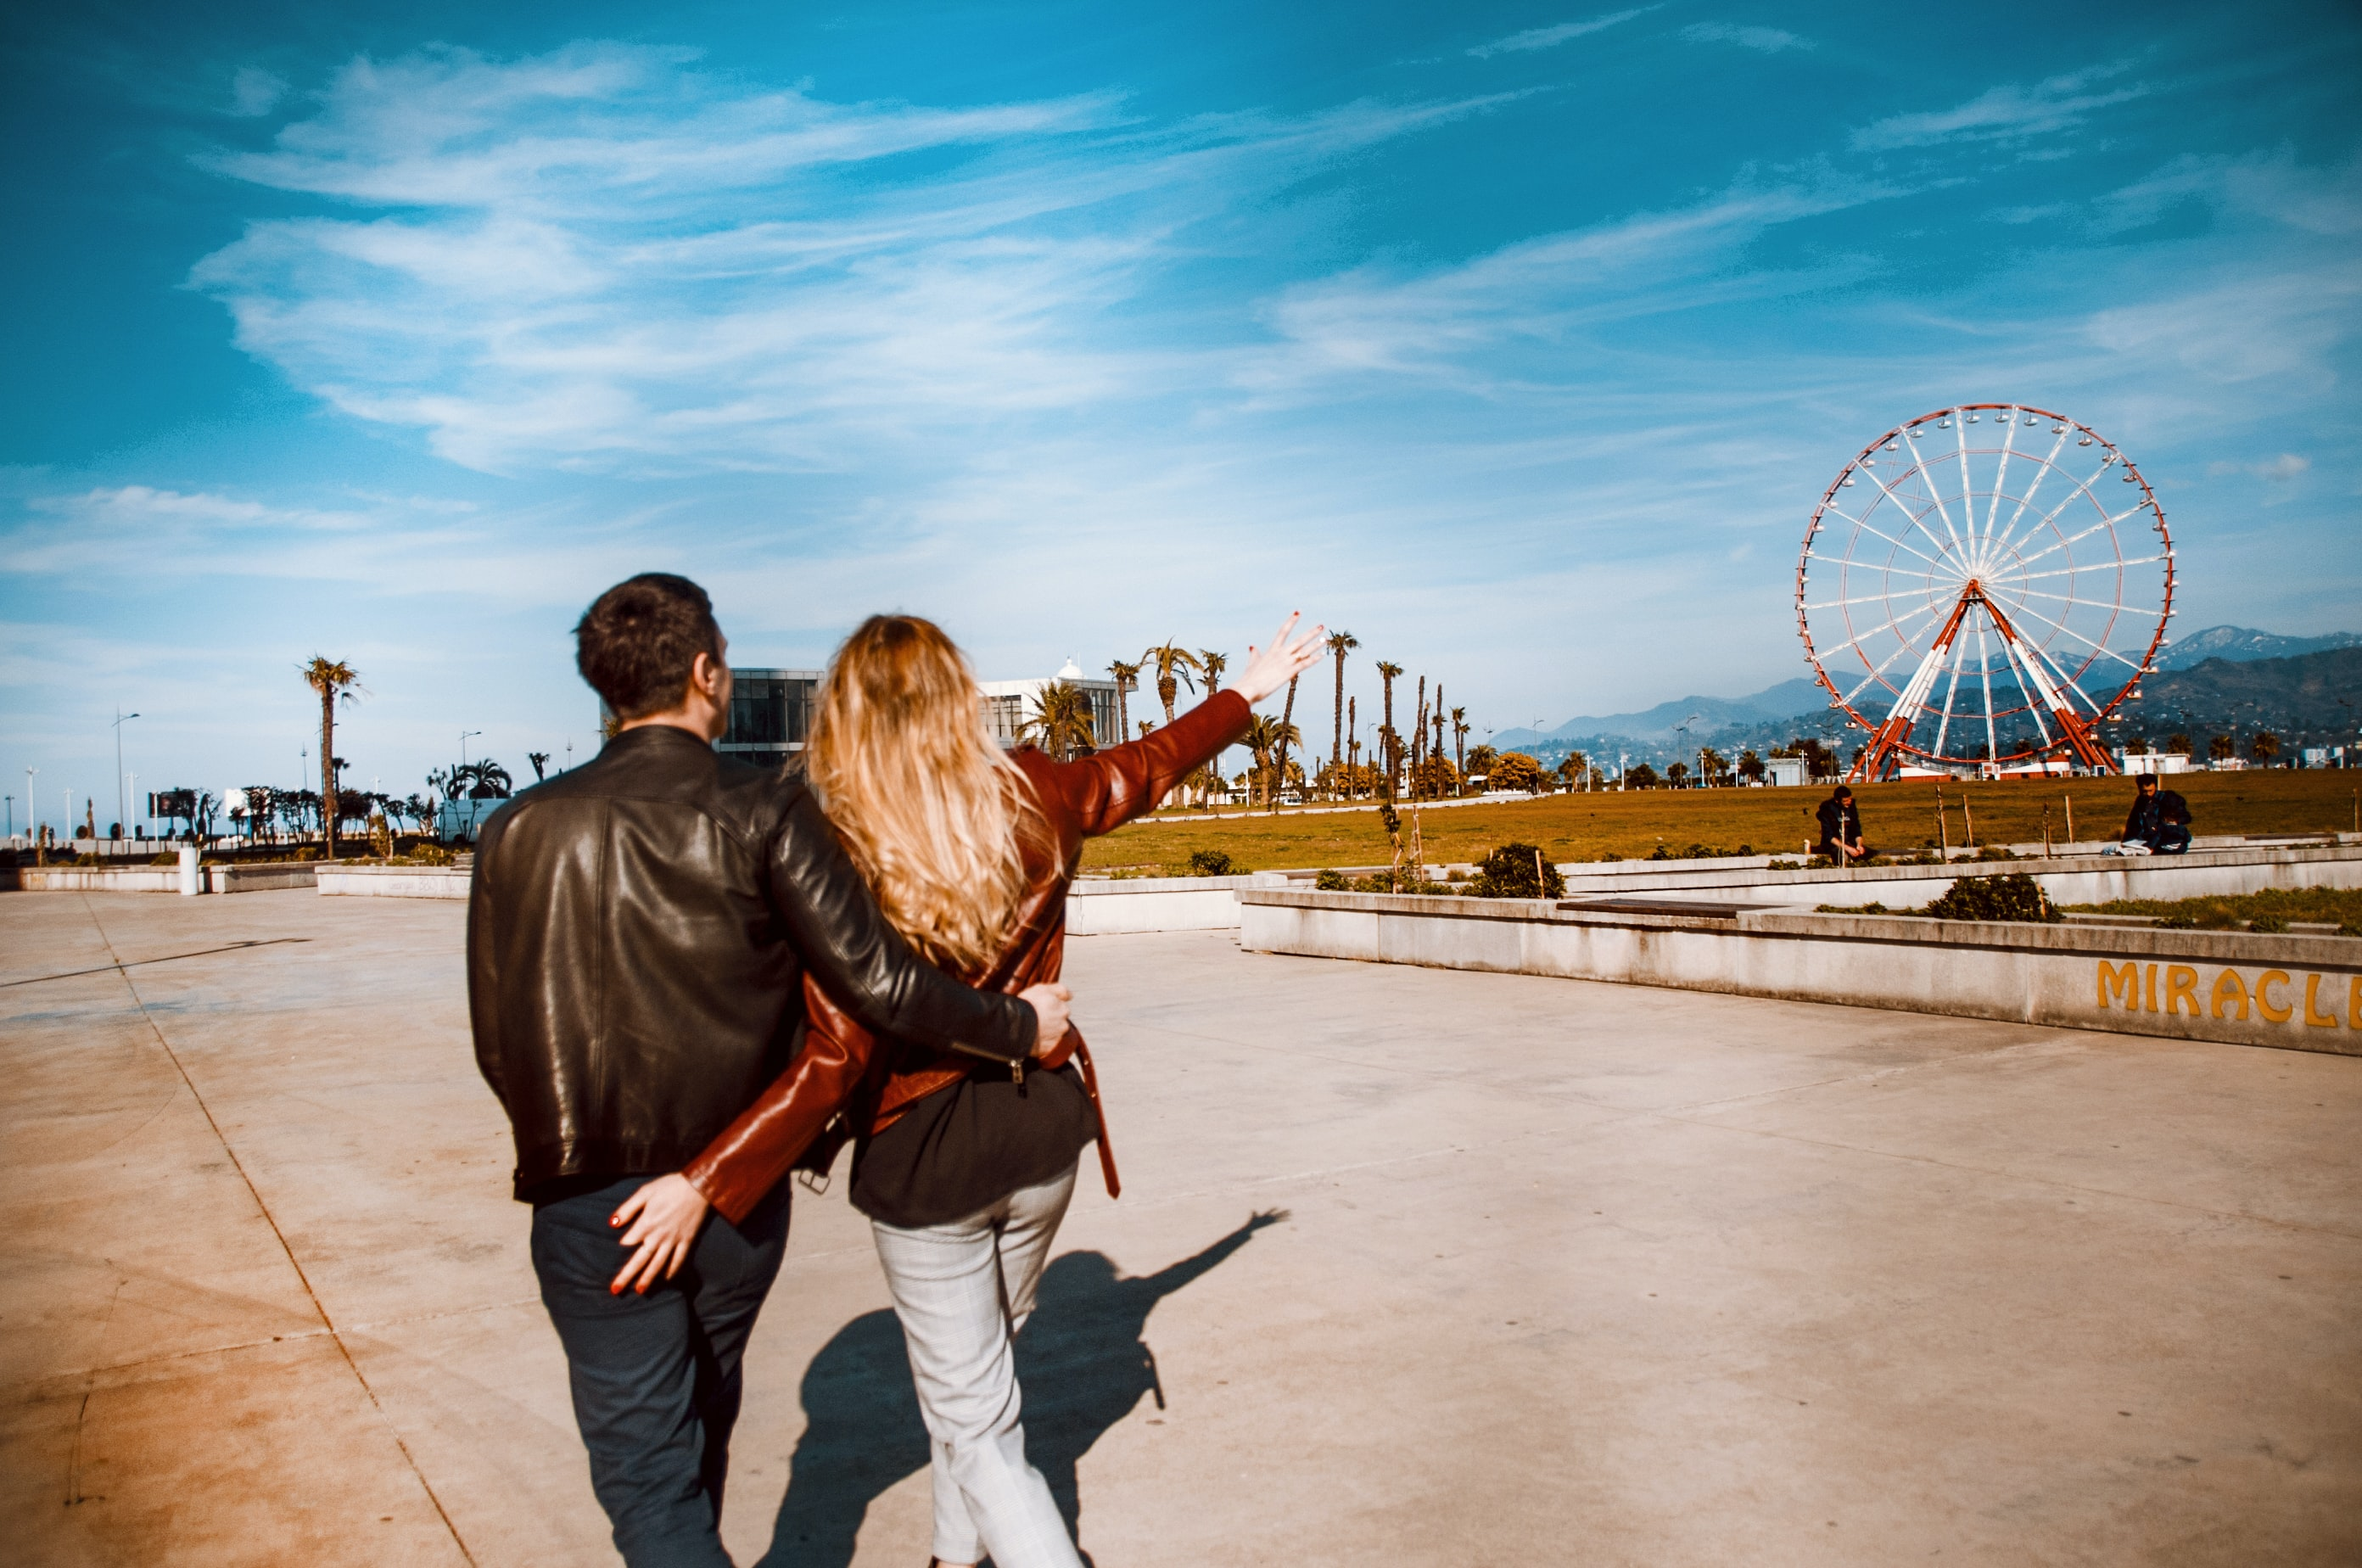 couple walking girl pointing red ferris wheel under blue sky and white clouds